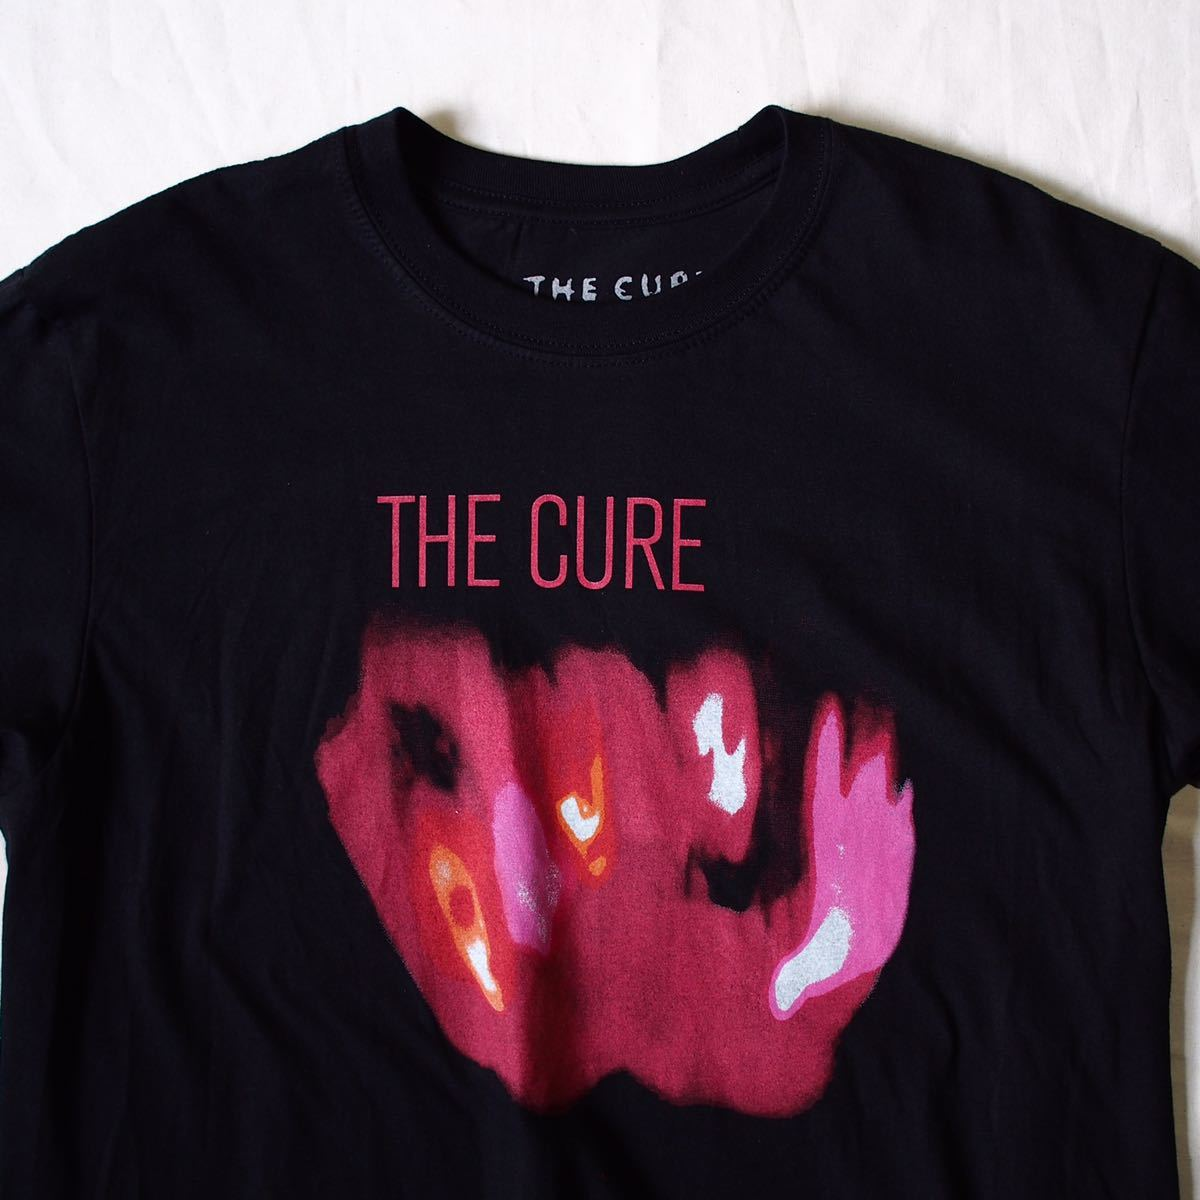 Official [The Cure] L キュアー Tシャツ バンド Nirvana Blur Oasis The Smiths joy division Stone Roses Pixies Dinosaur Jr R.E.M._画像2